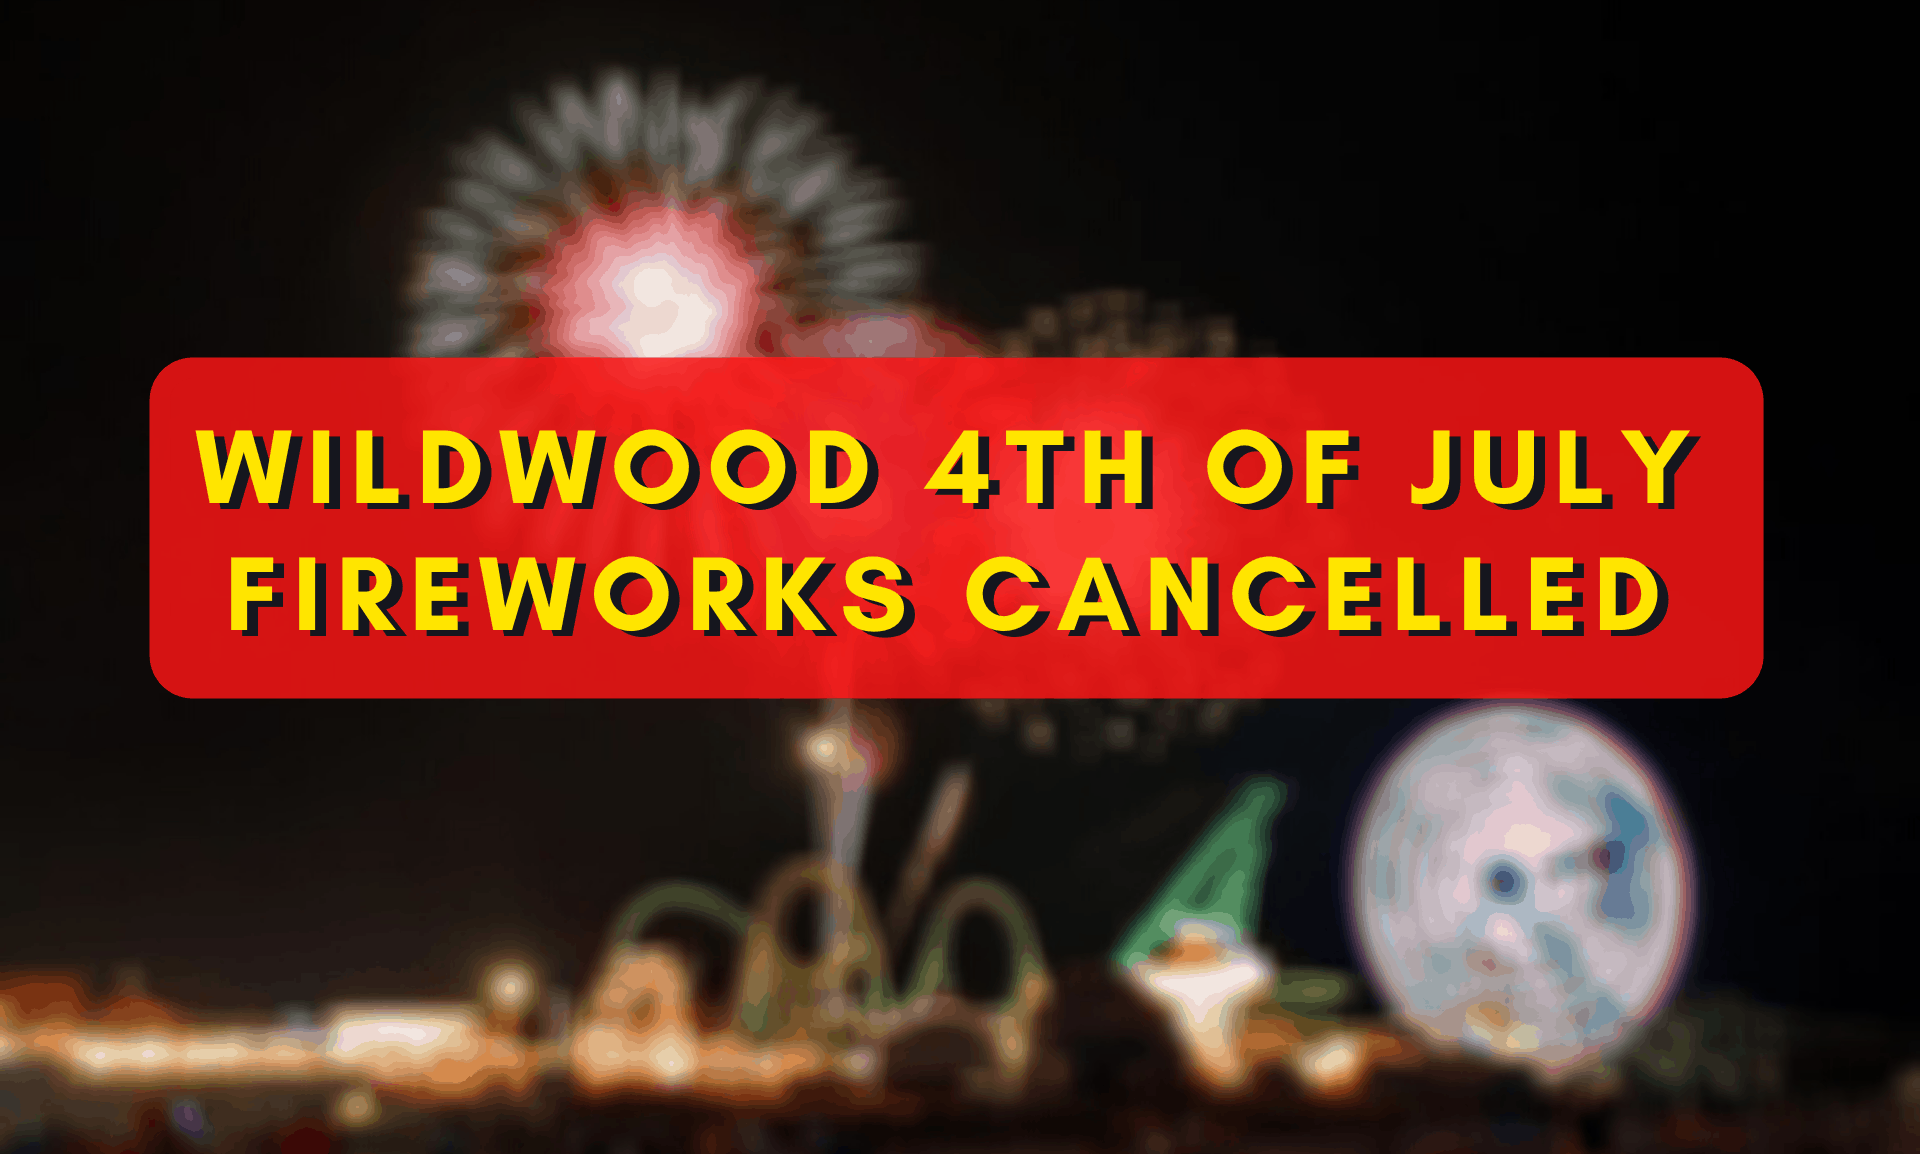 Wildwood 4th of July Fireworks Cancelled!